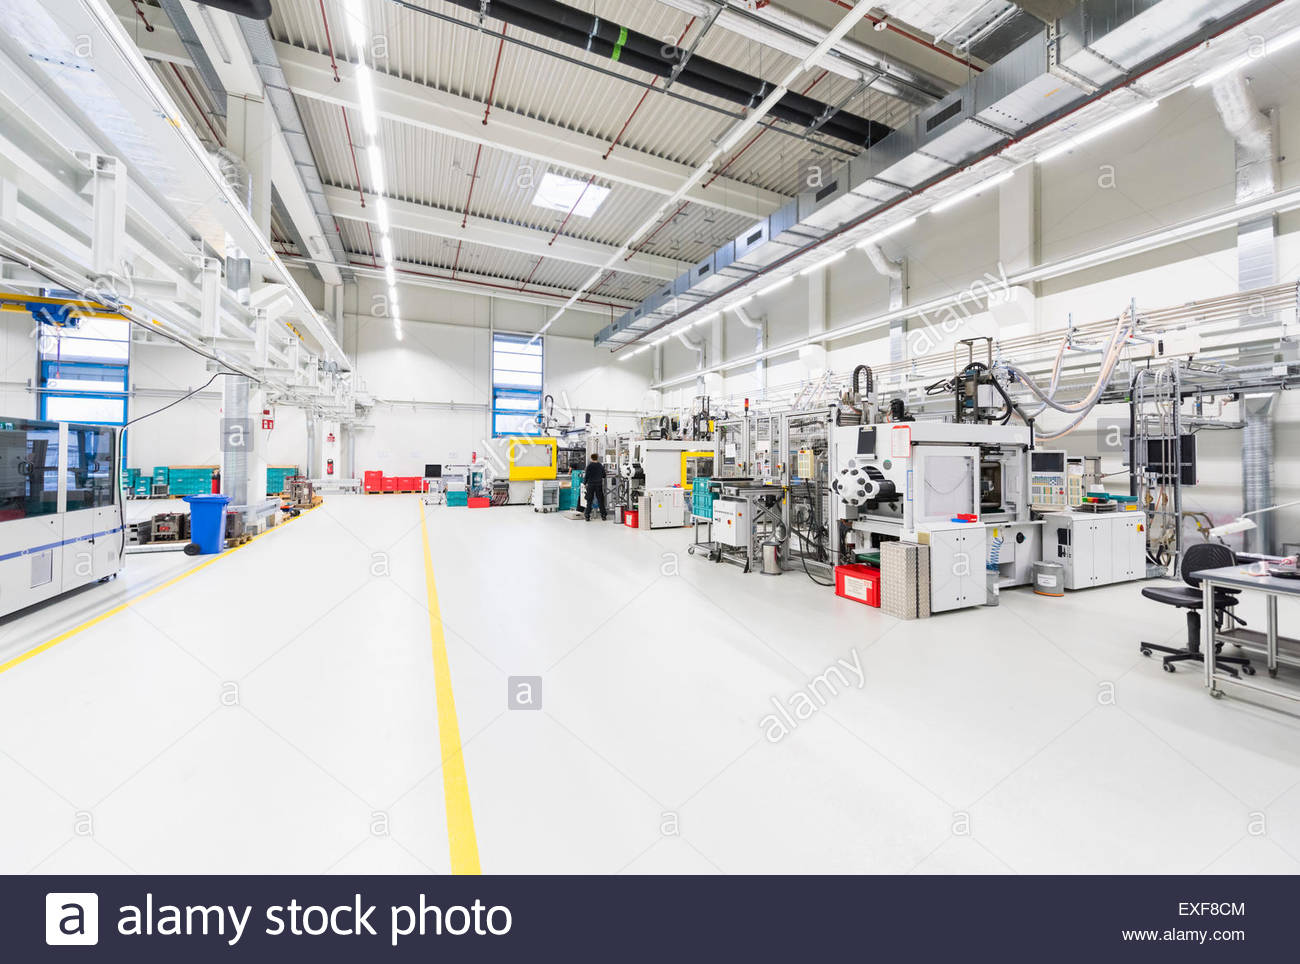 Rows of work stations in factory - Stock Image